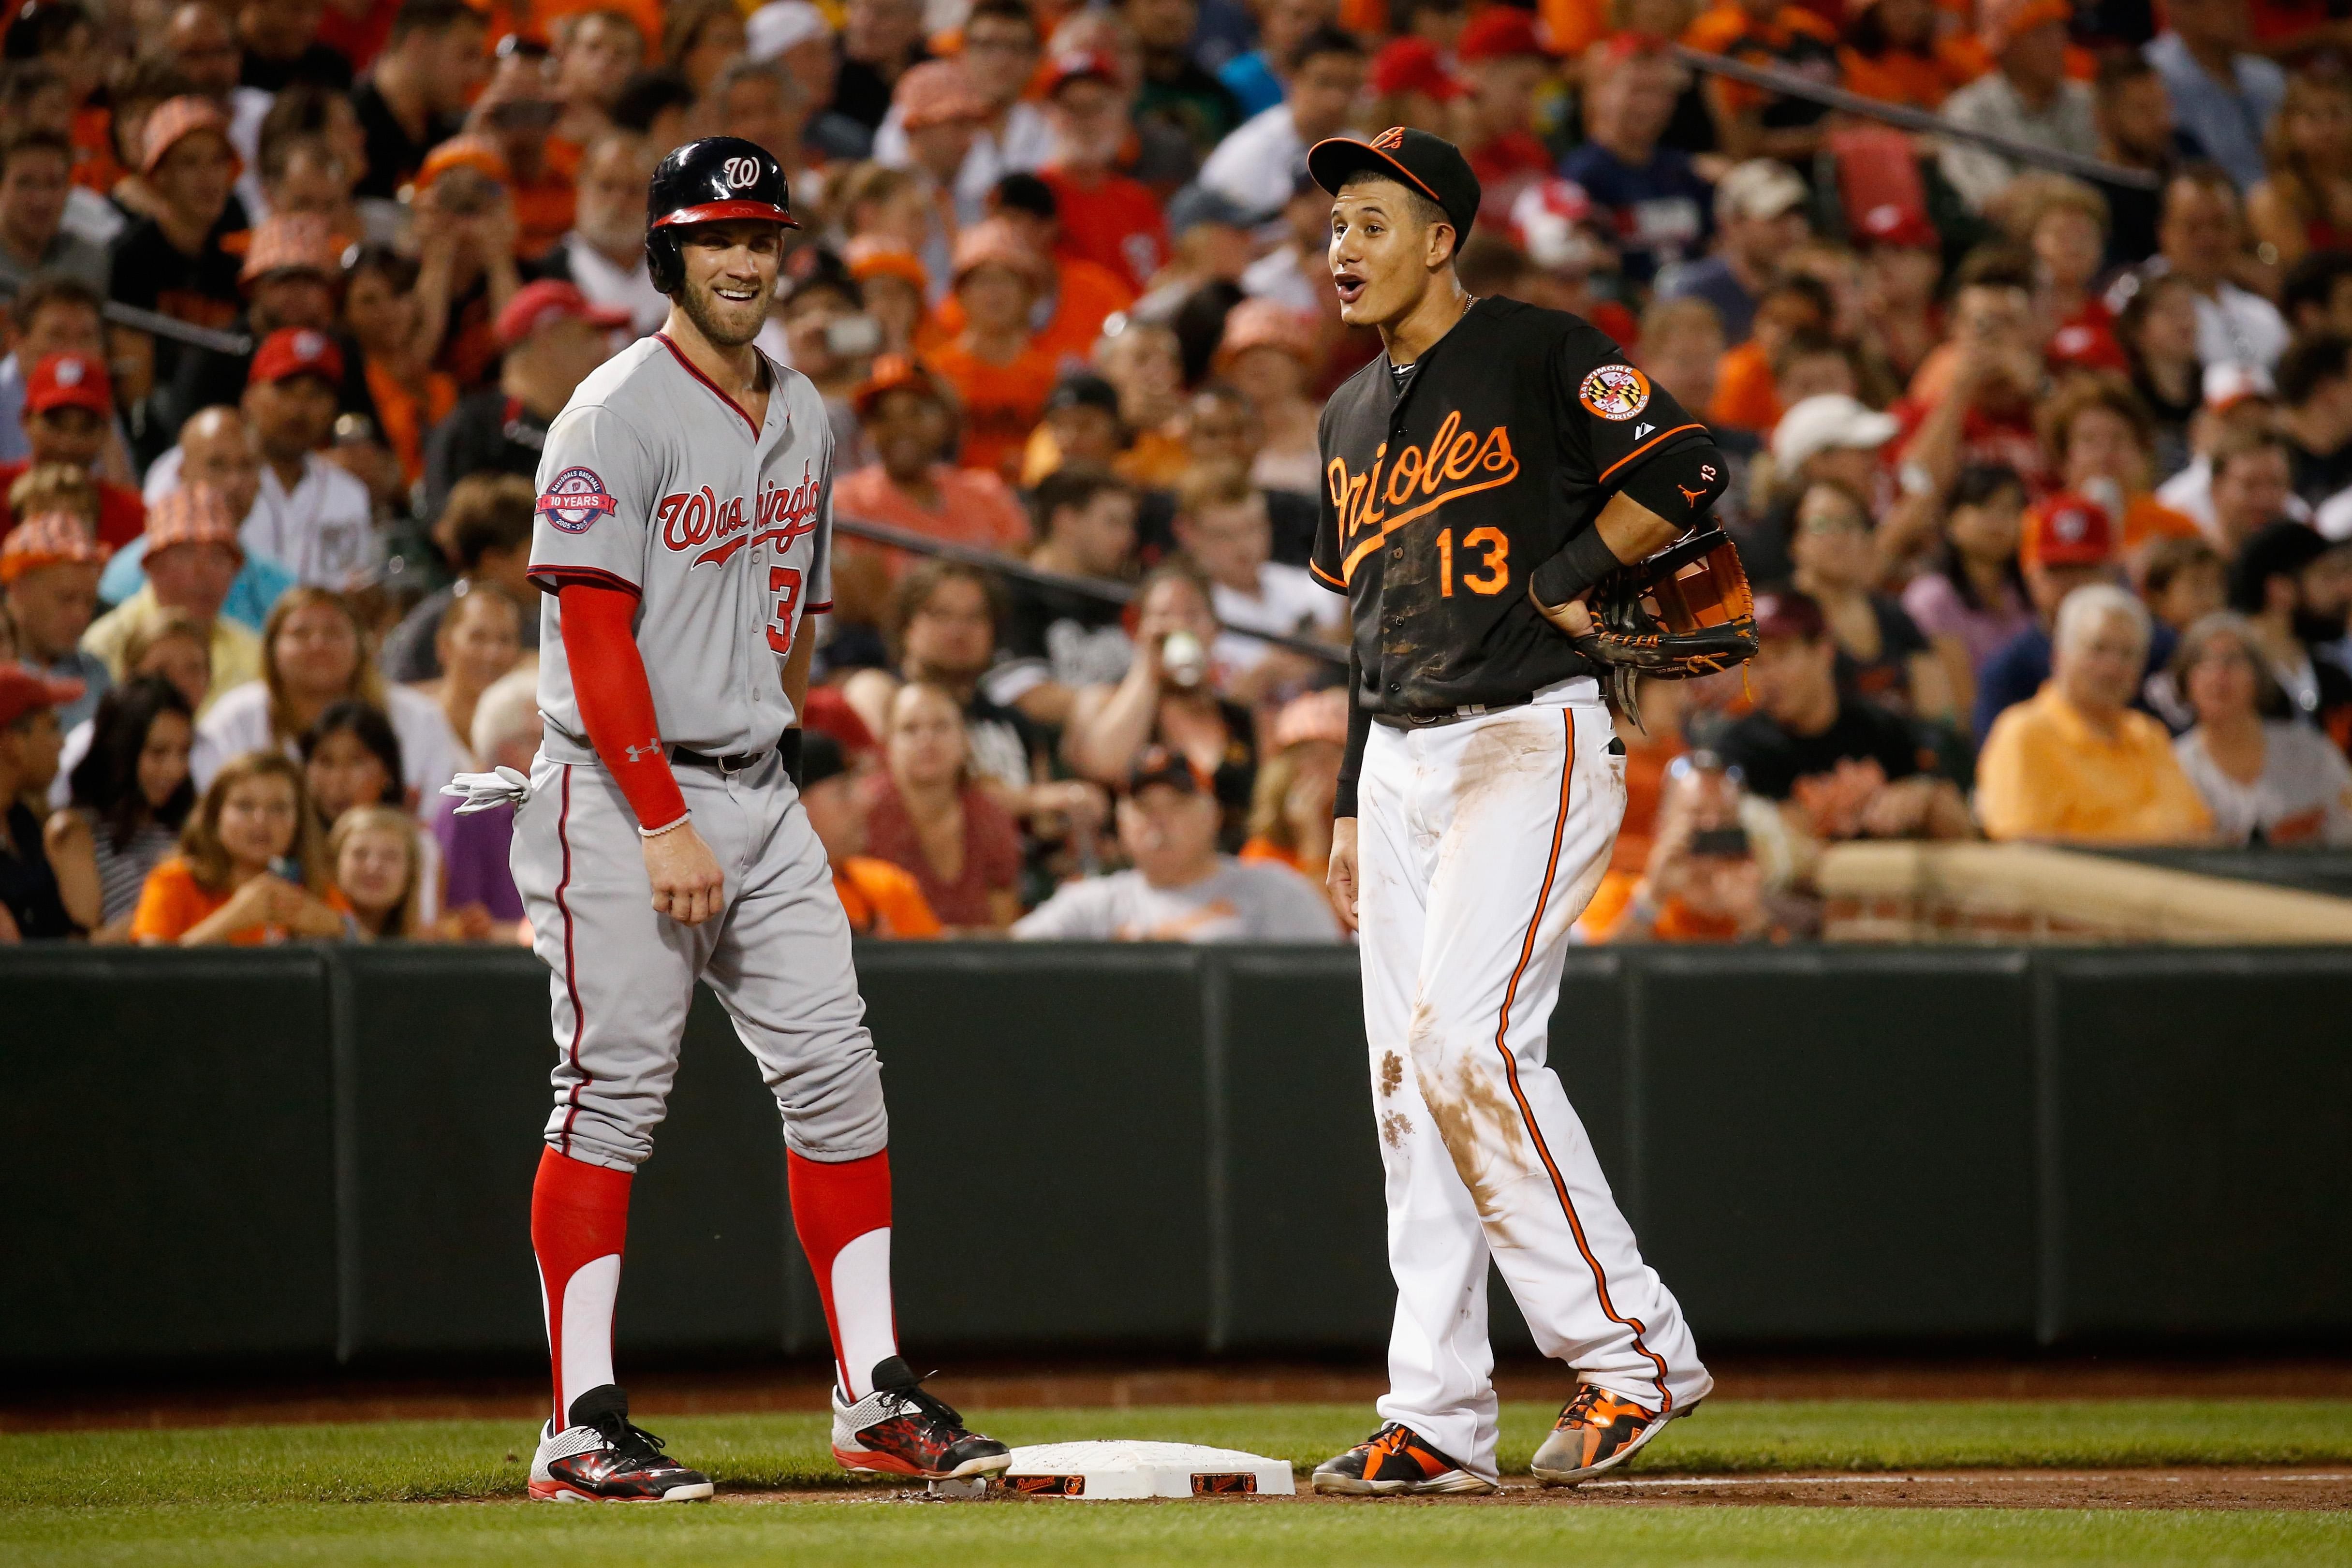 Could the Phillies sign both Harper and Machado this offseason?